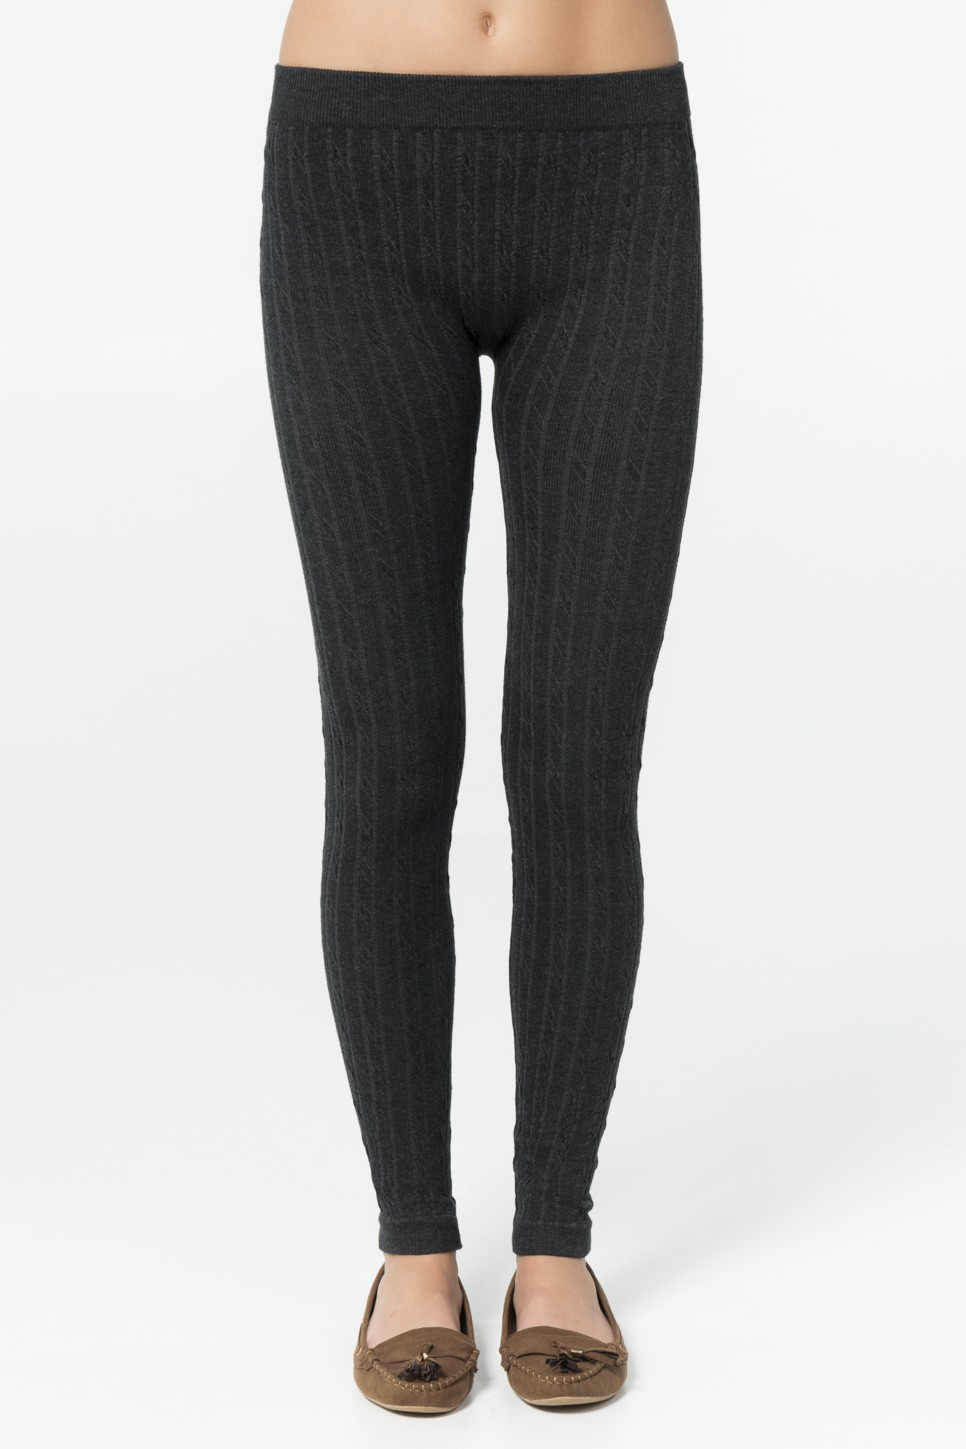 Heather charcoal cable knit leggings